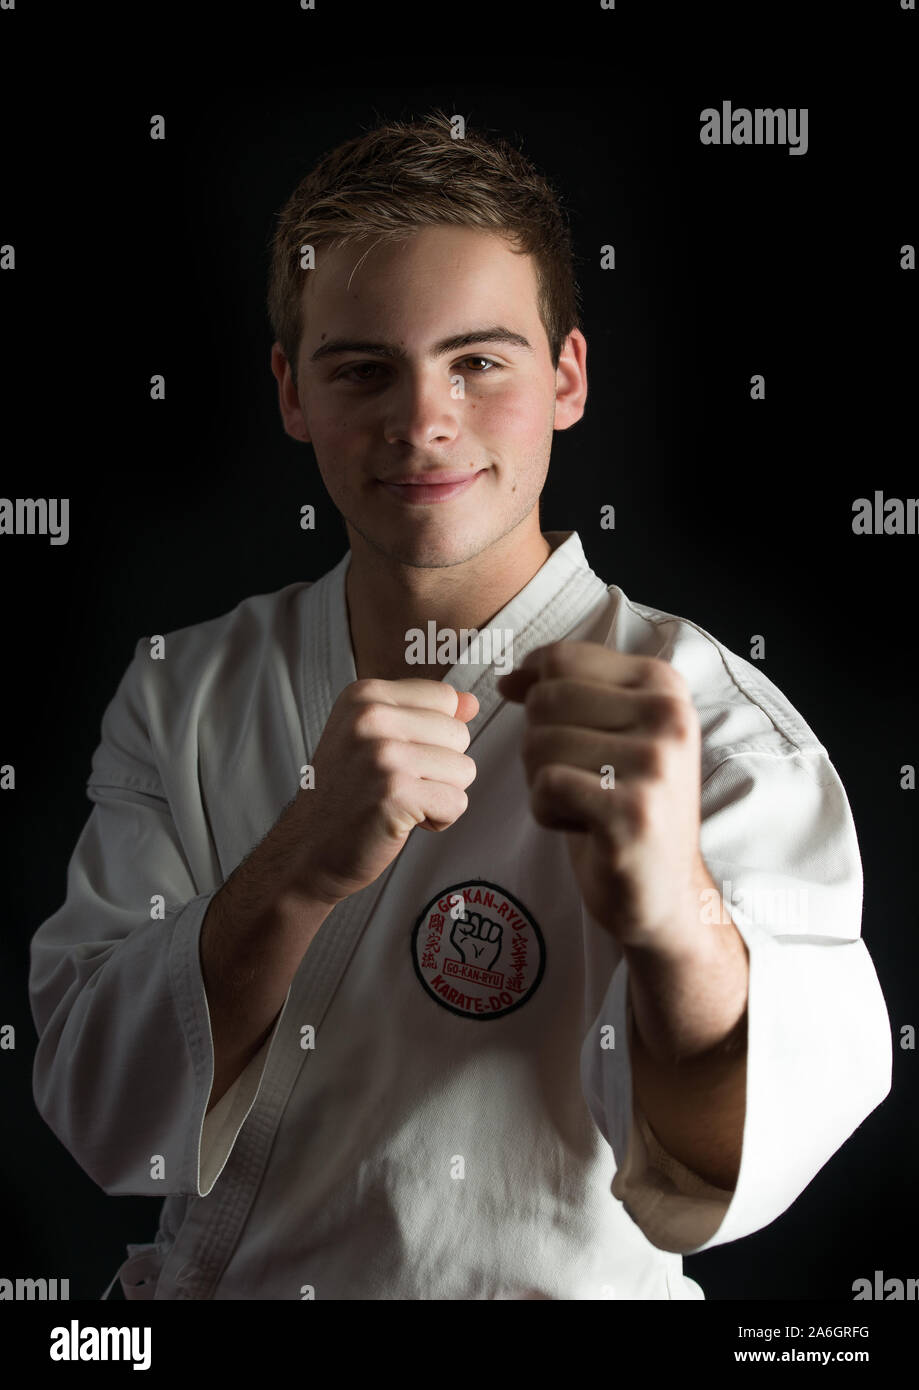 A handsome young man in his karate gi, suit, Stock Photo